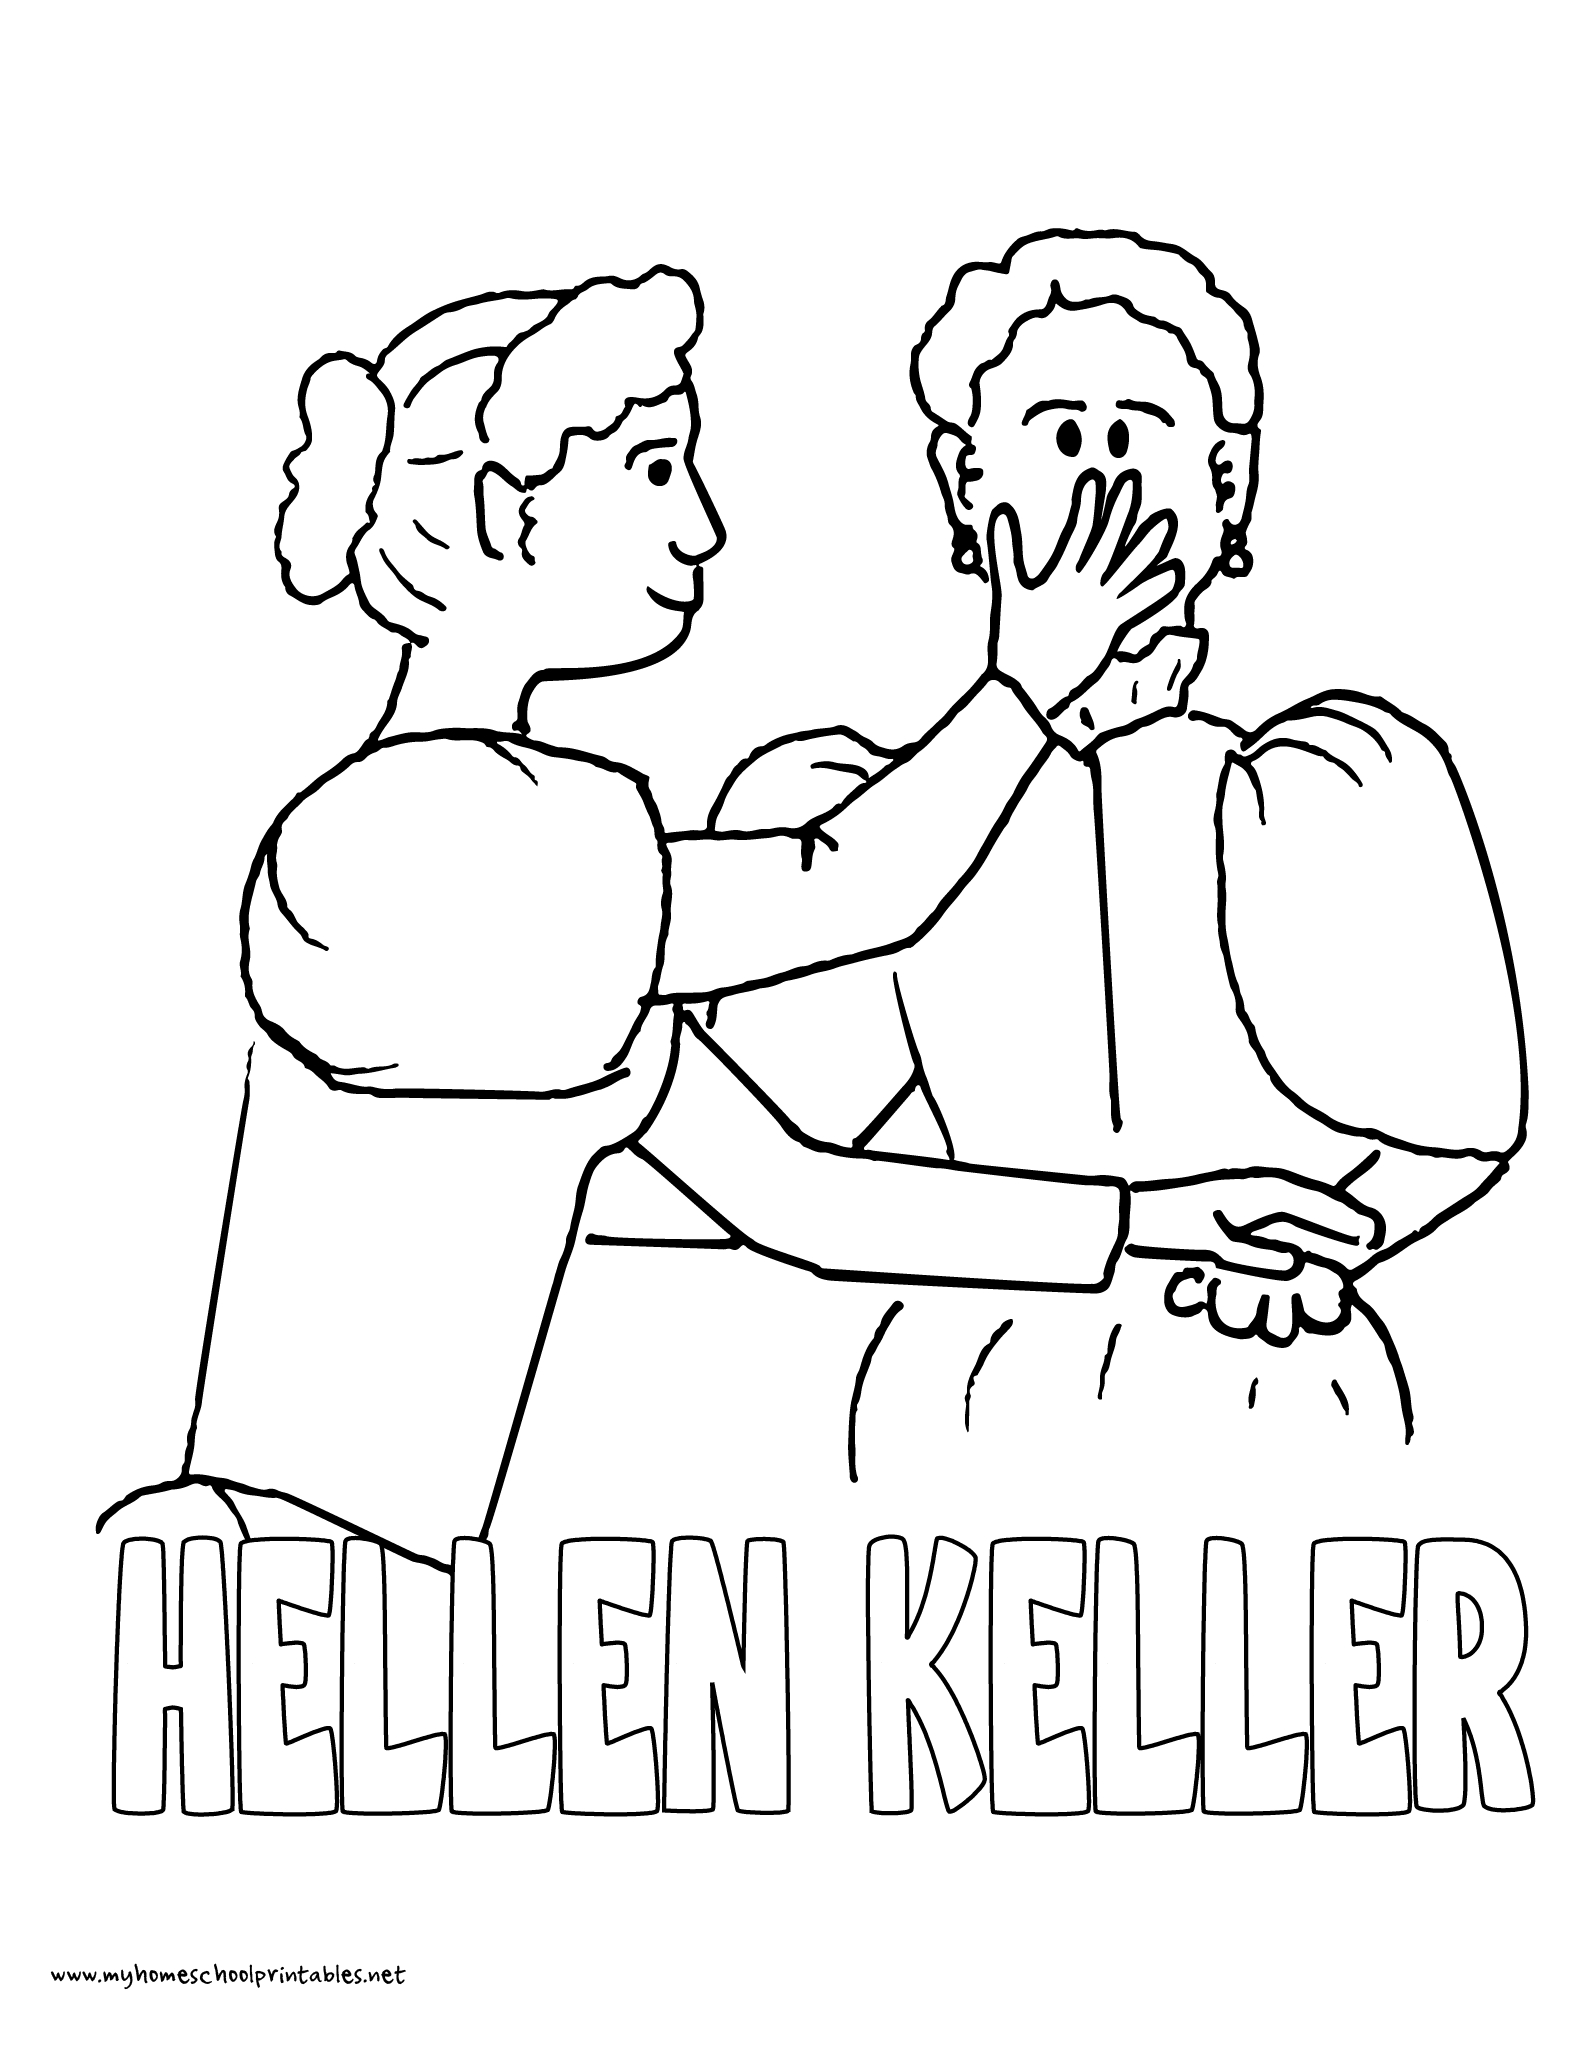 History Coloring Pages – Volume 4 | Mystery Of History 4 | Mystery - Free Printable Pictures Of Helen Keller